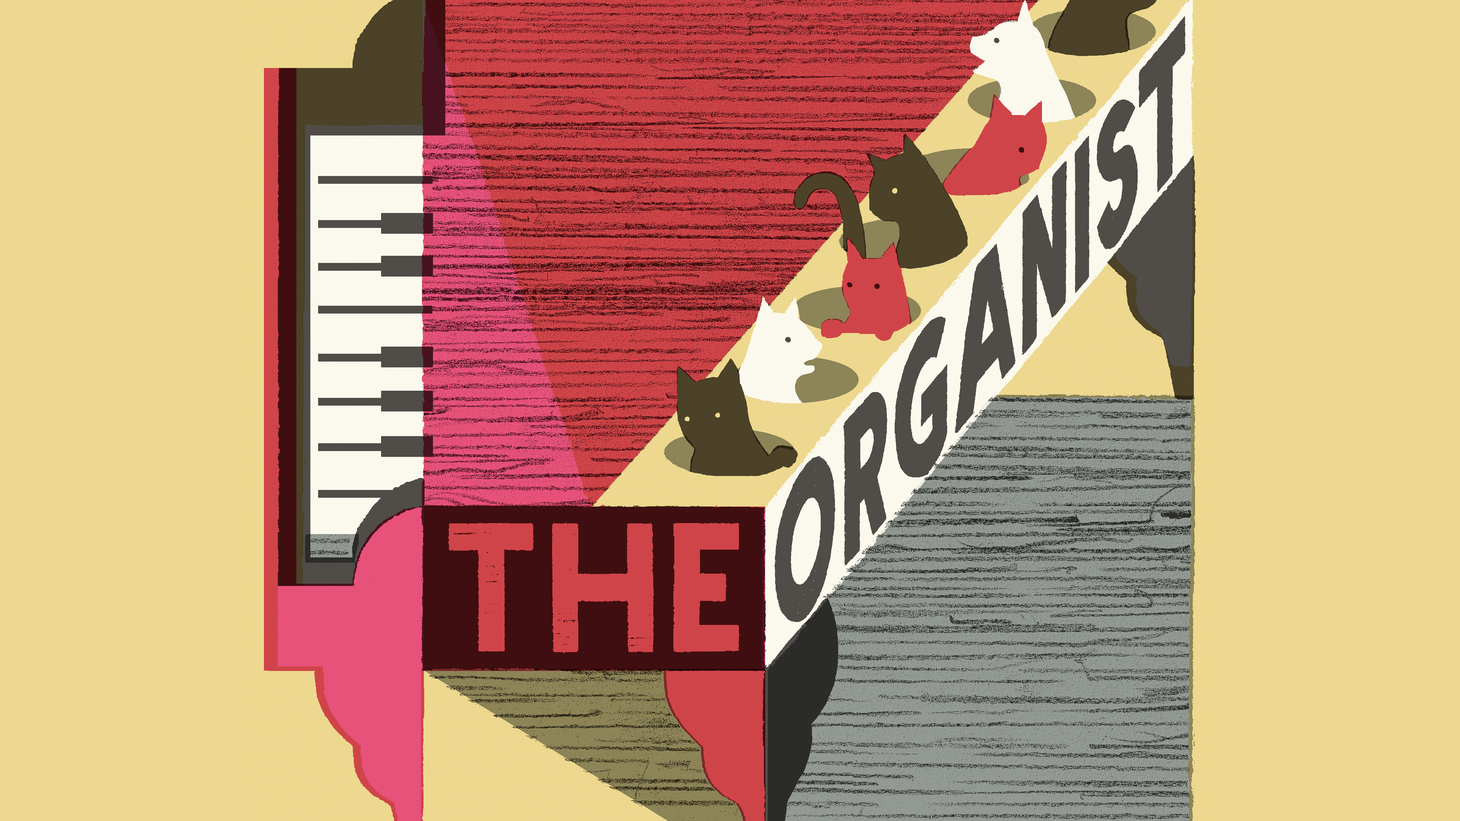 KCRW's Bob Carlson and host Andrew Leland introduce the new season of The Organist.